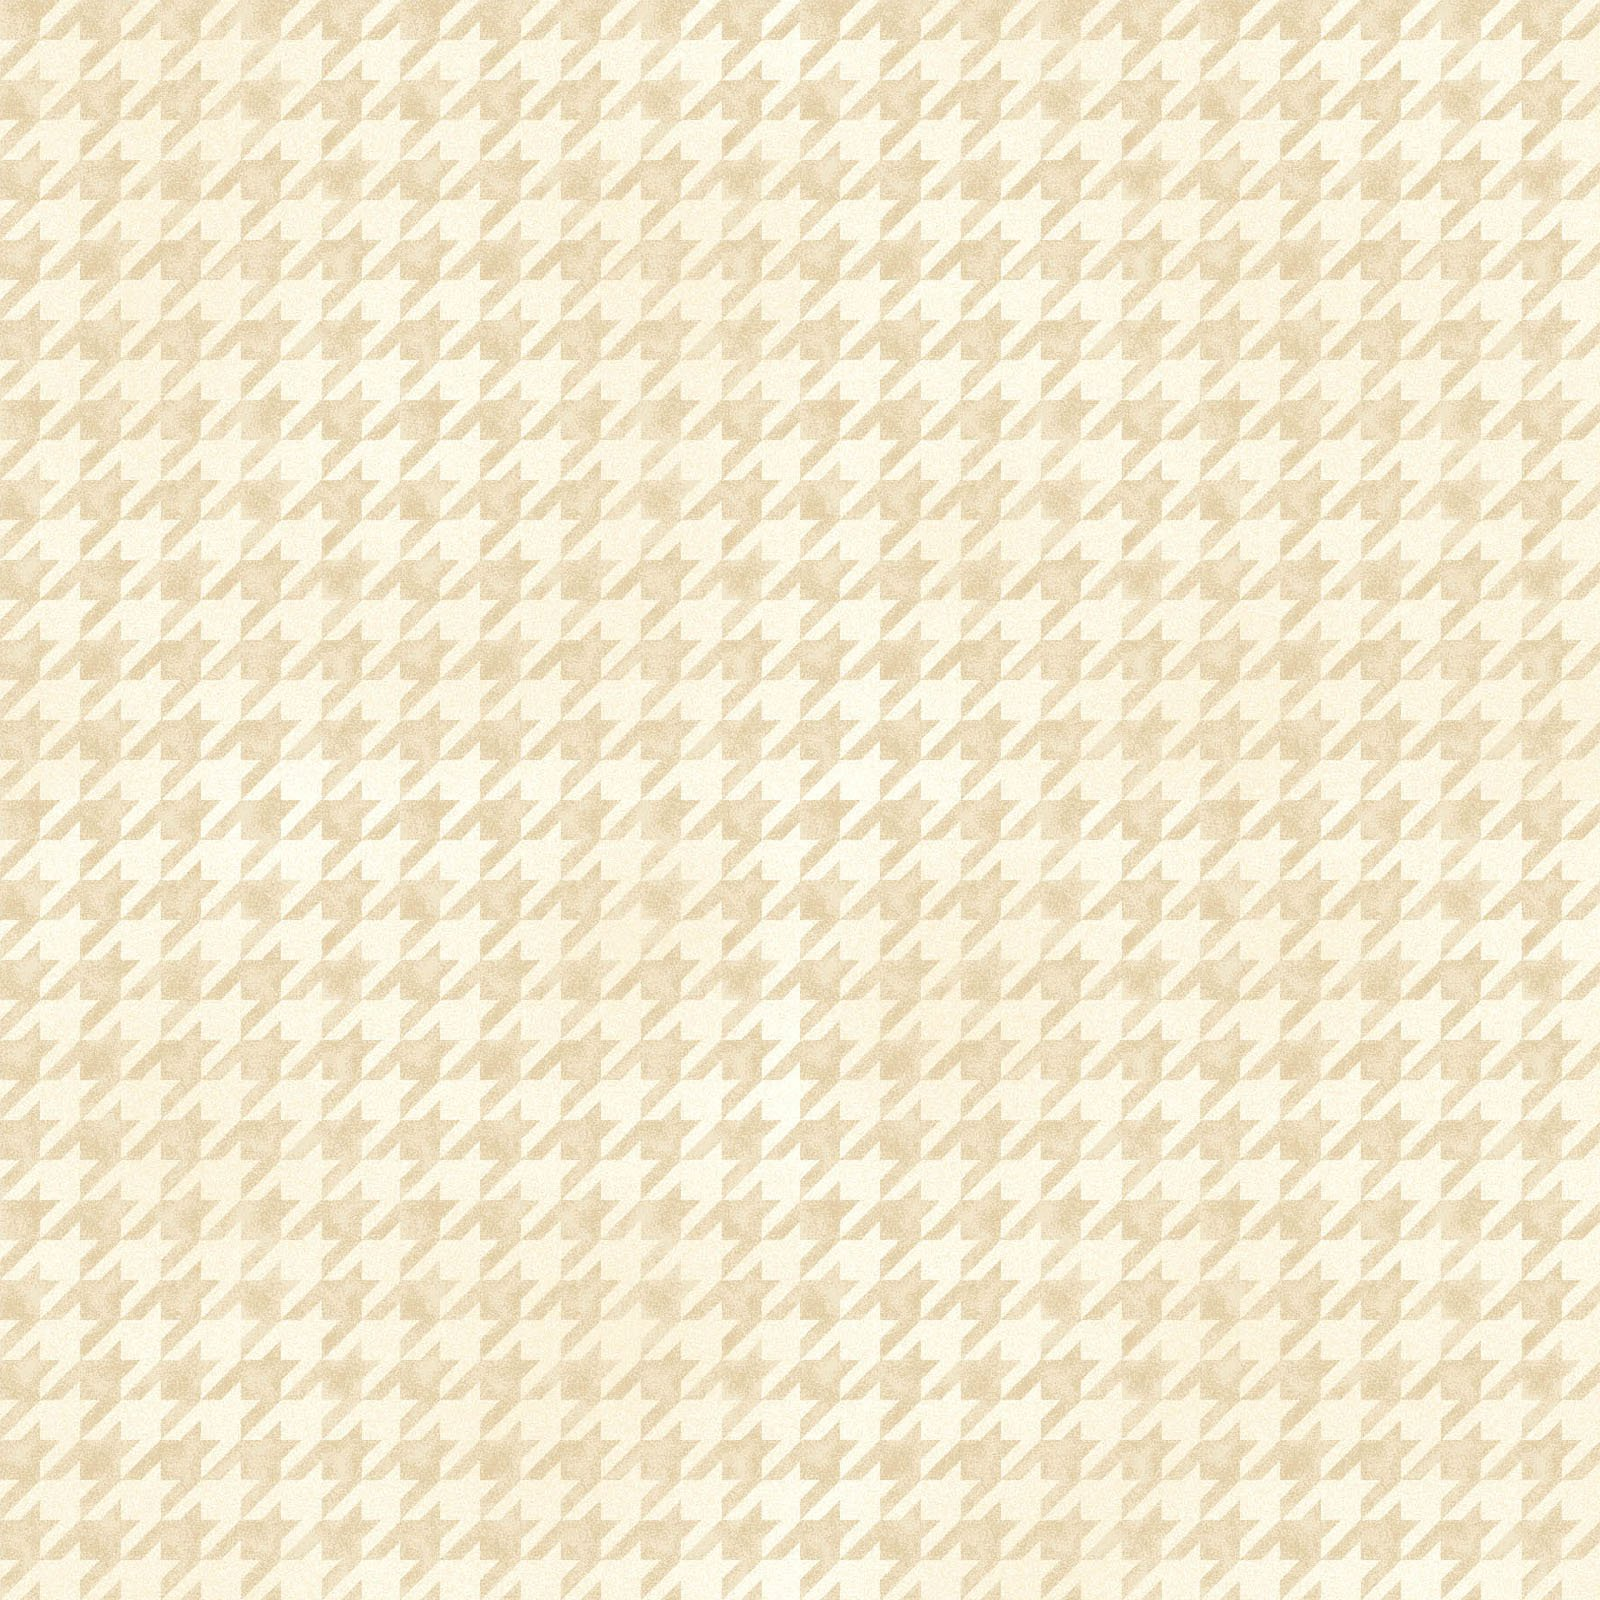 Arabella Shaded Houndstooth Cream - MAS8427-E